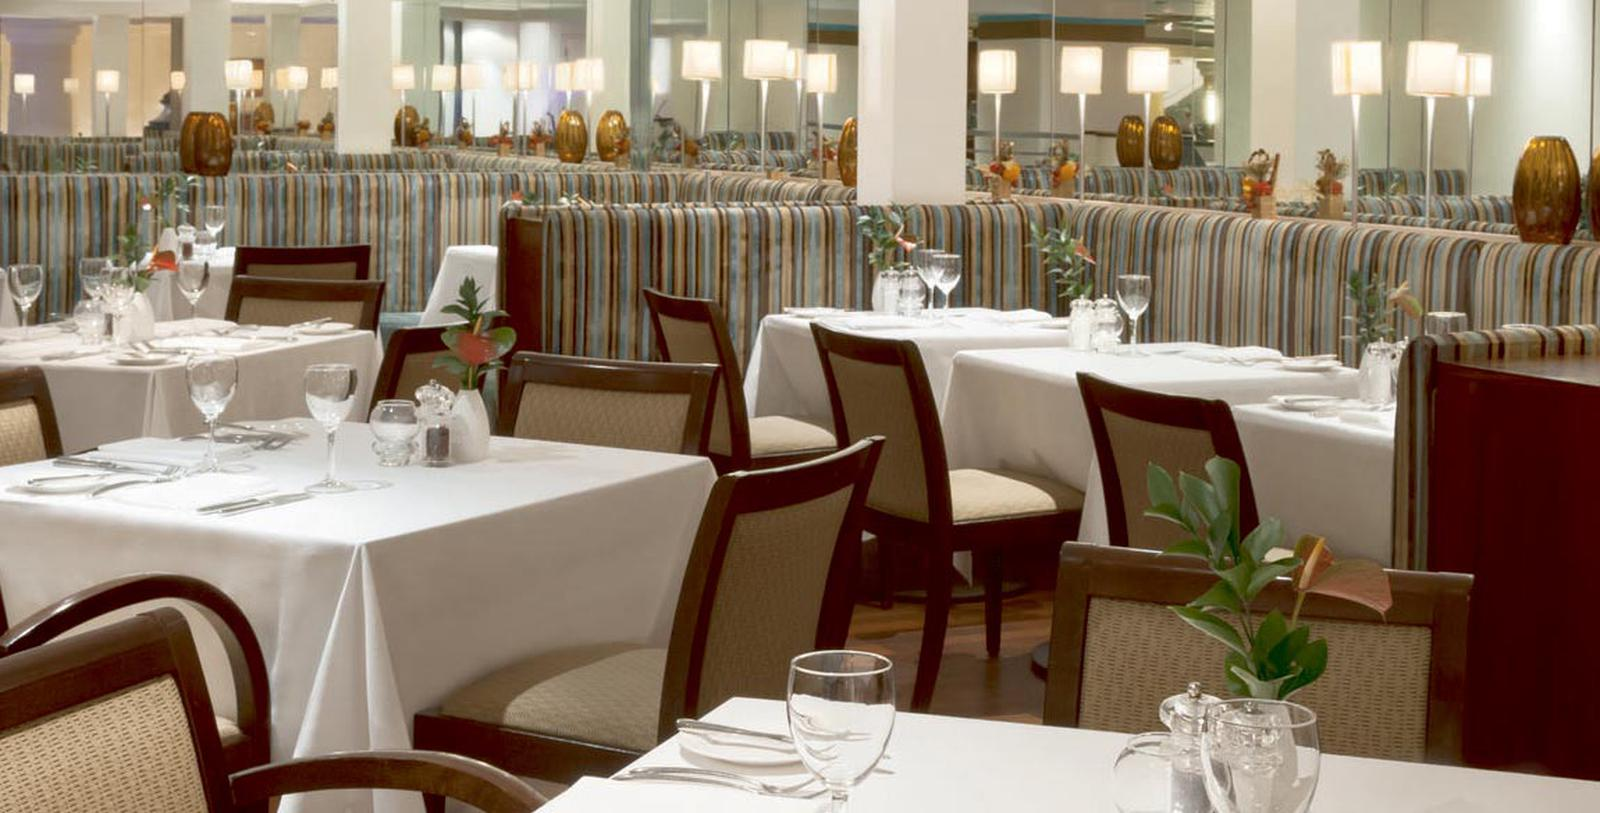 Image of 146 Restaurant, Hilton London Paddington, United Kingdom, 1854, Member of Historic Hotels Worldwide, Taste